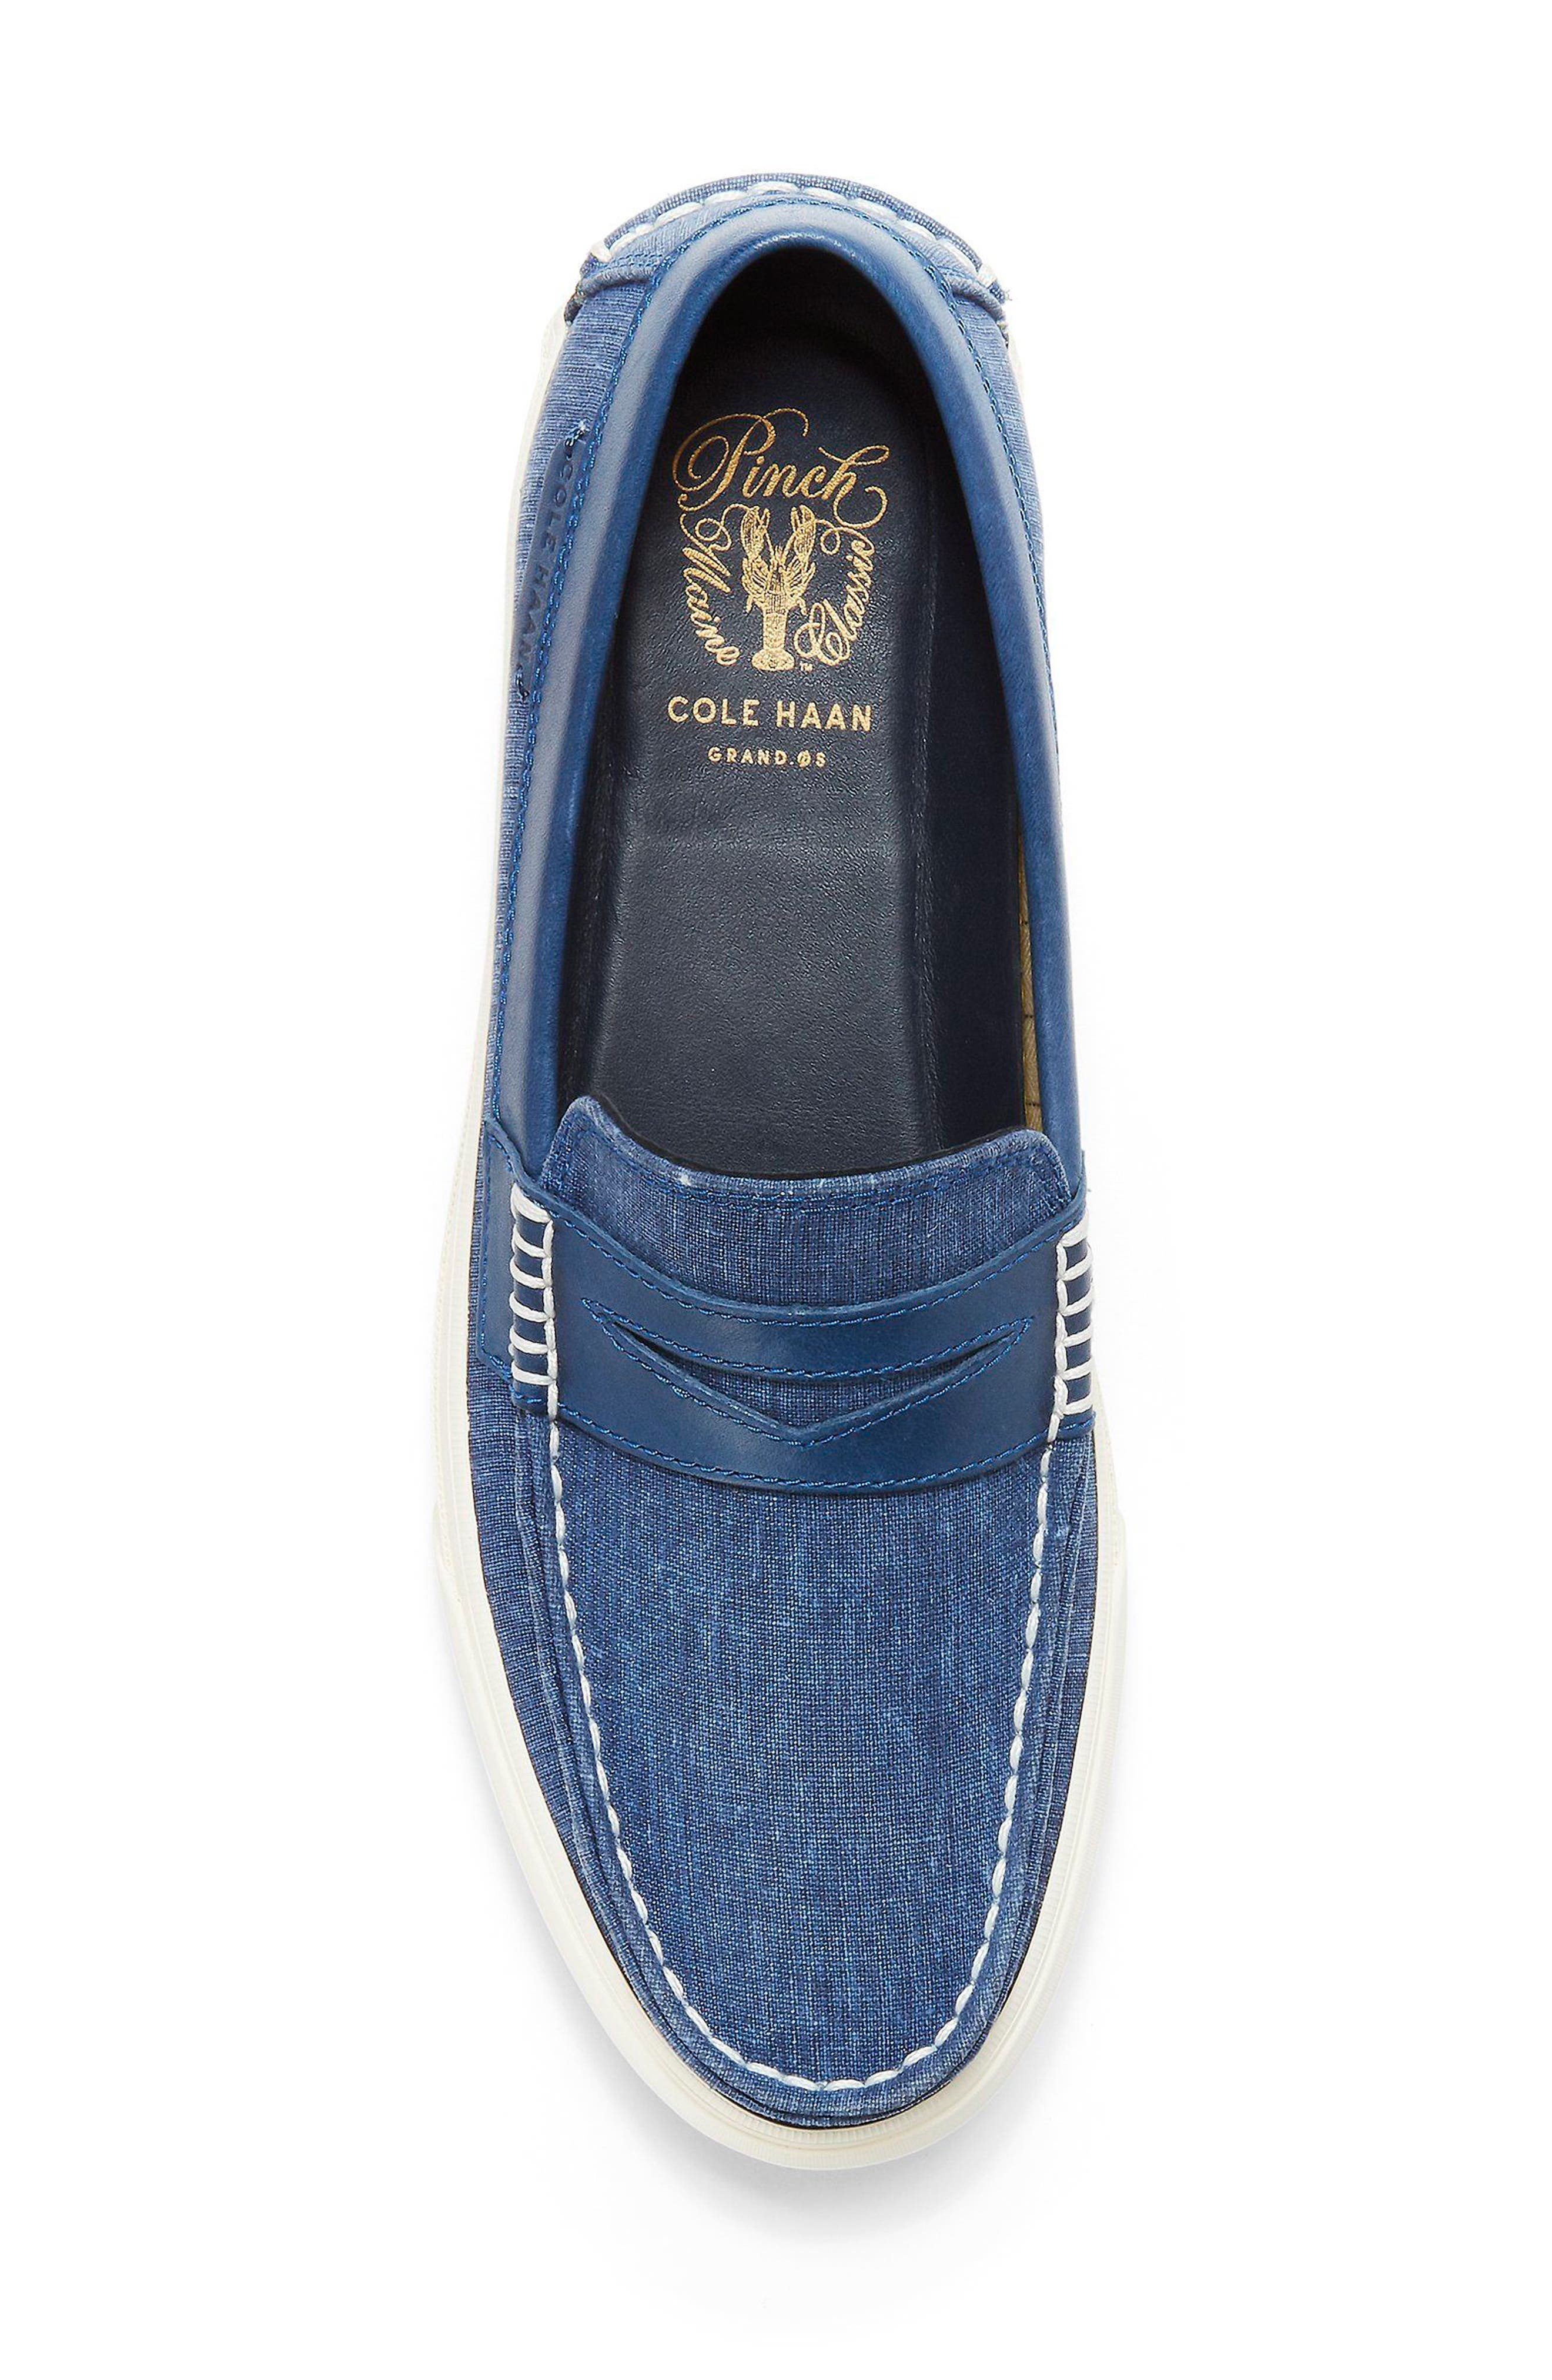 Pinch Weekend LX Penny Loafer,                             Alternate thumbnail 49, color,